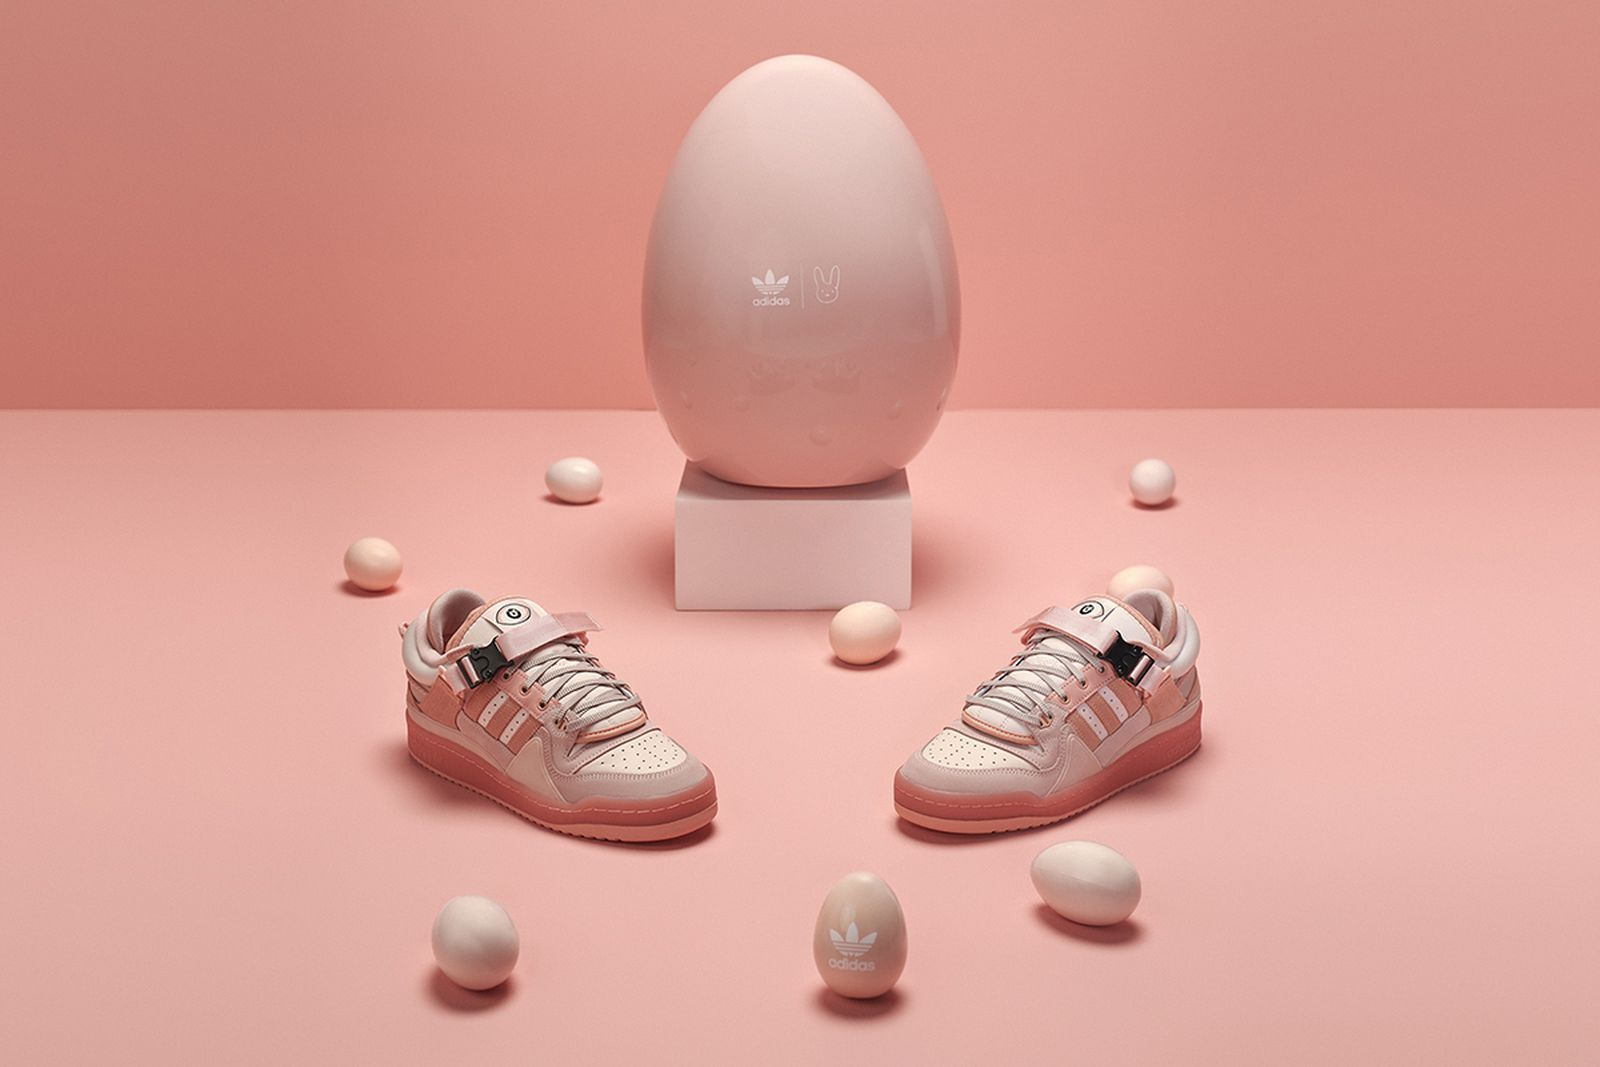 bad-bunny-adidas-forum-buckle-low-pink-release-date-price-03